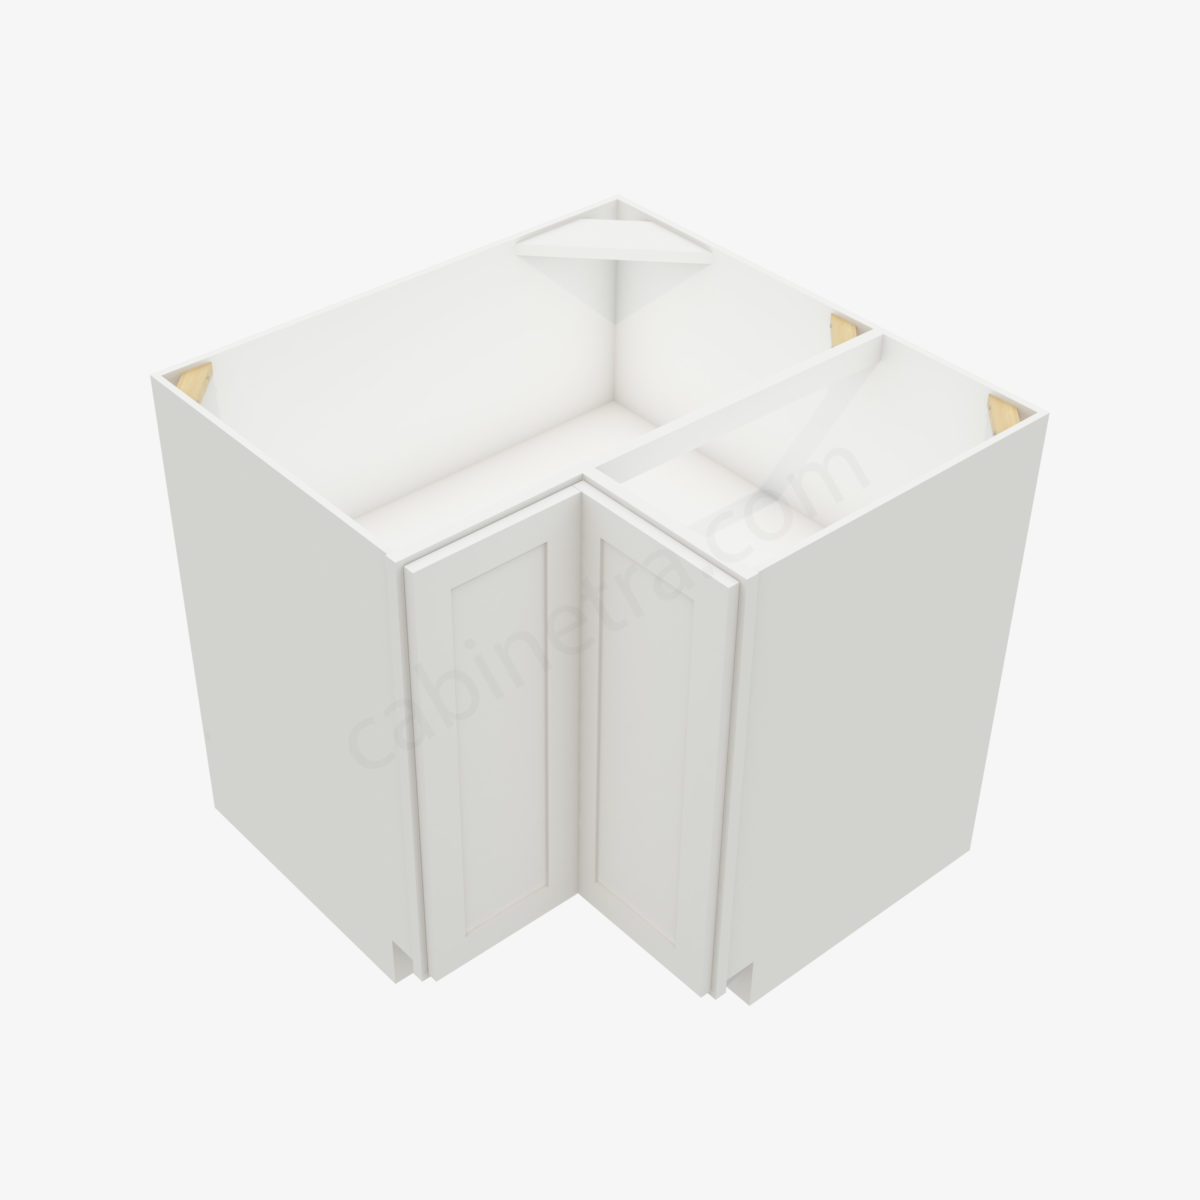 AW LS3612S 4 Forevermark Ice White Shaker Cabinetra scaled